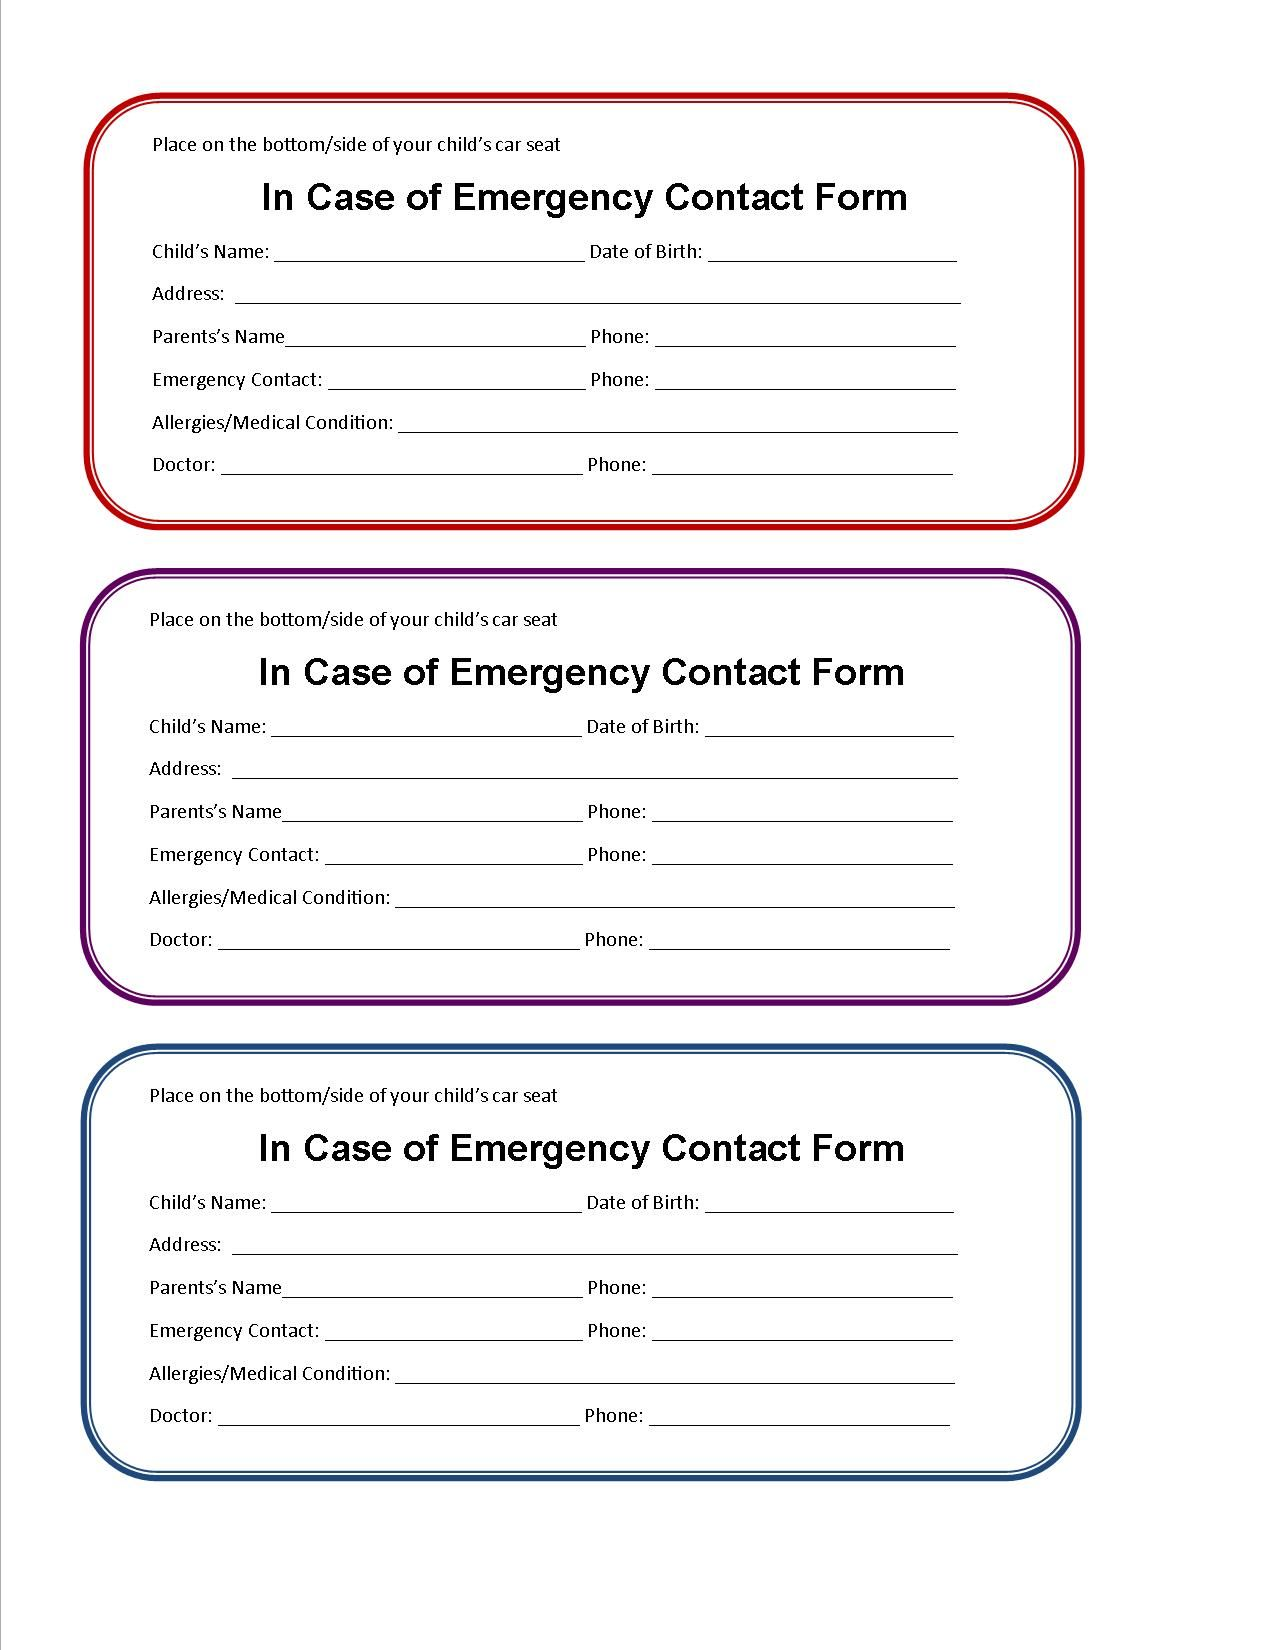 Printable Emergency Contact Form for Car Seat | Car seats and ...